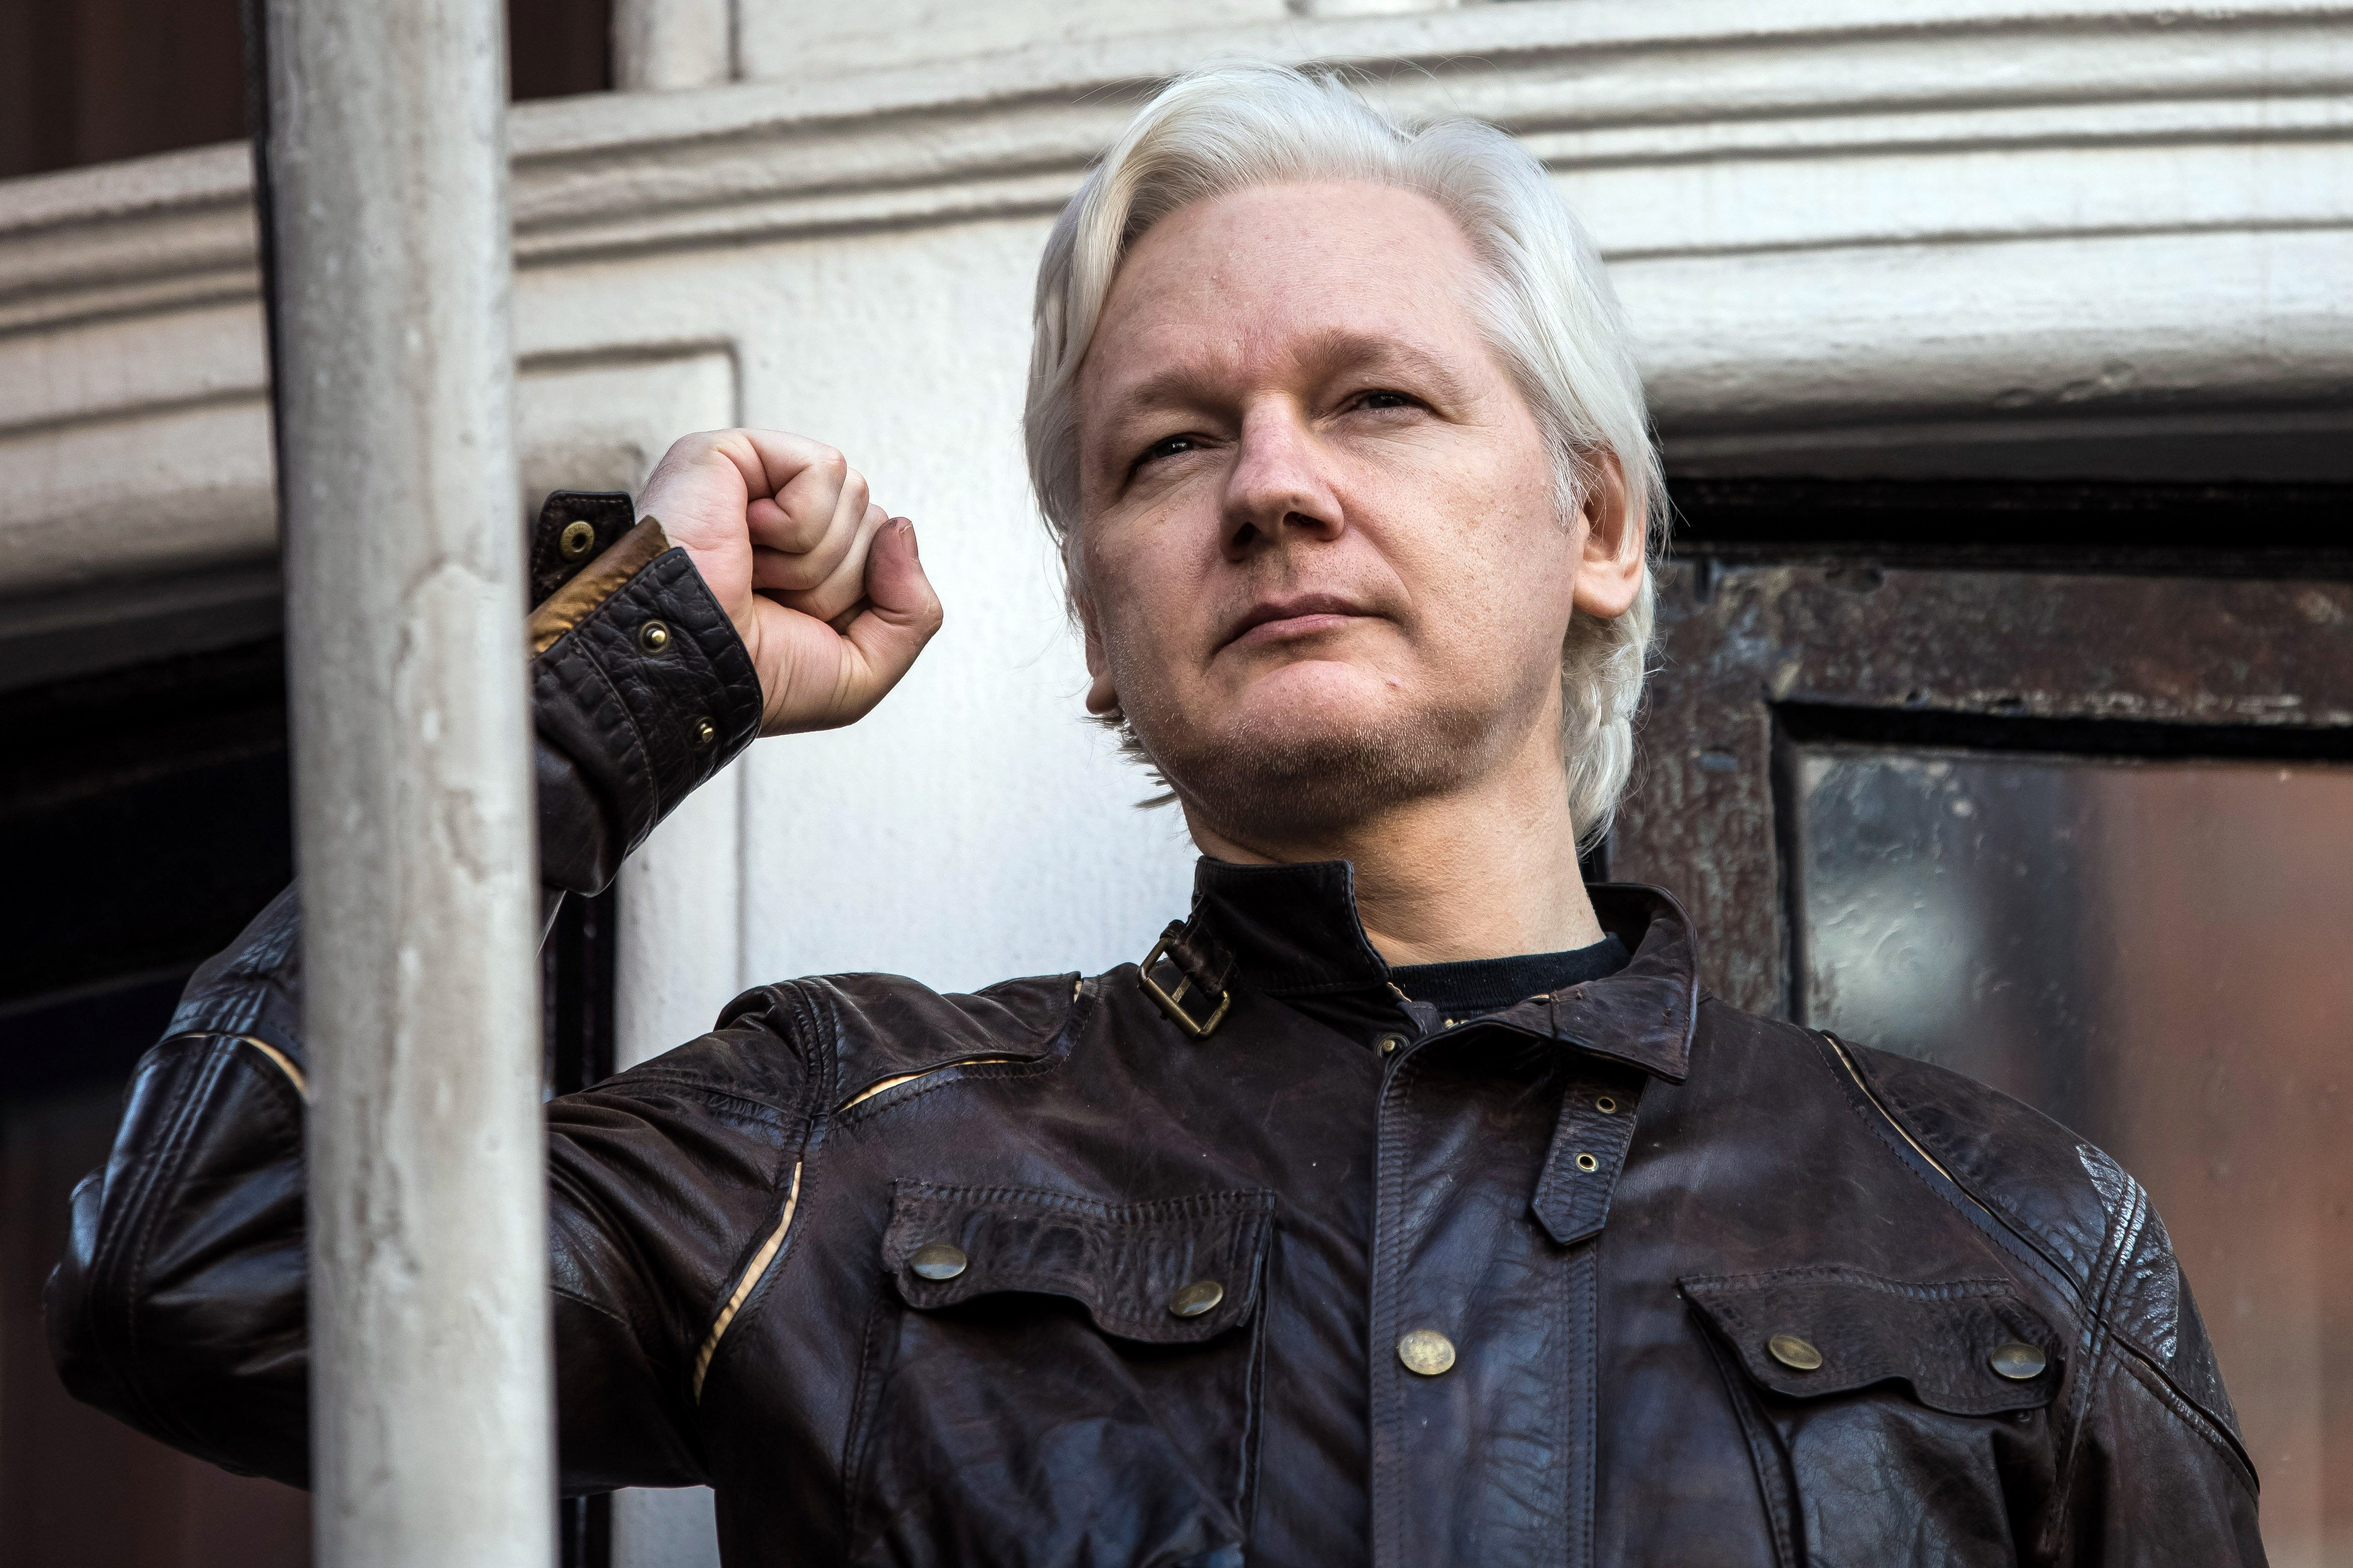 Wiki Leaks founder Julian Assange speaks from the Ecuador Embassy after Sweden's director of public prosecutions Marianne Ny drops rape investigation.Julian Assange rape investigation dropped by Swedish authorities, London, UK - 19 May 2017